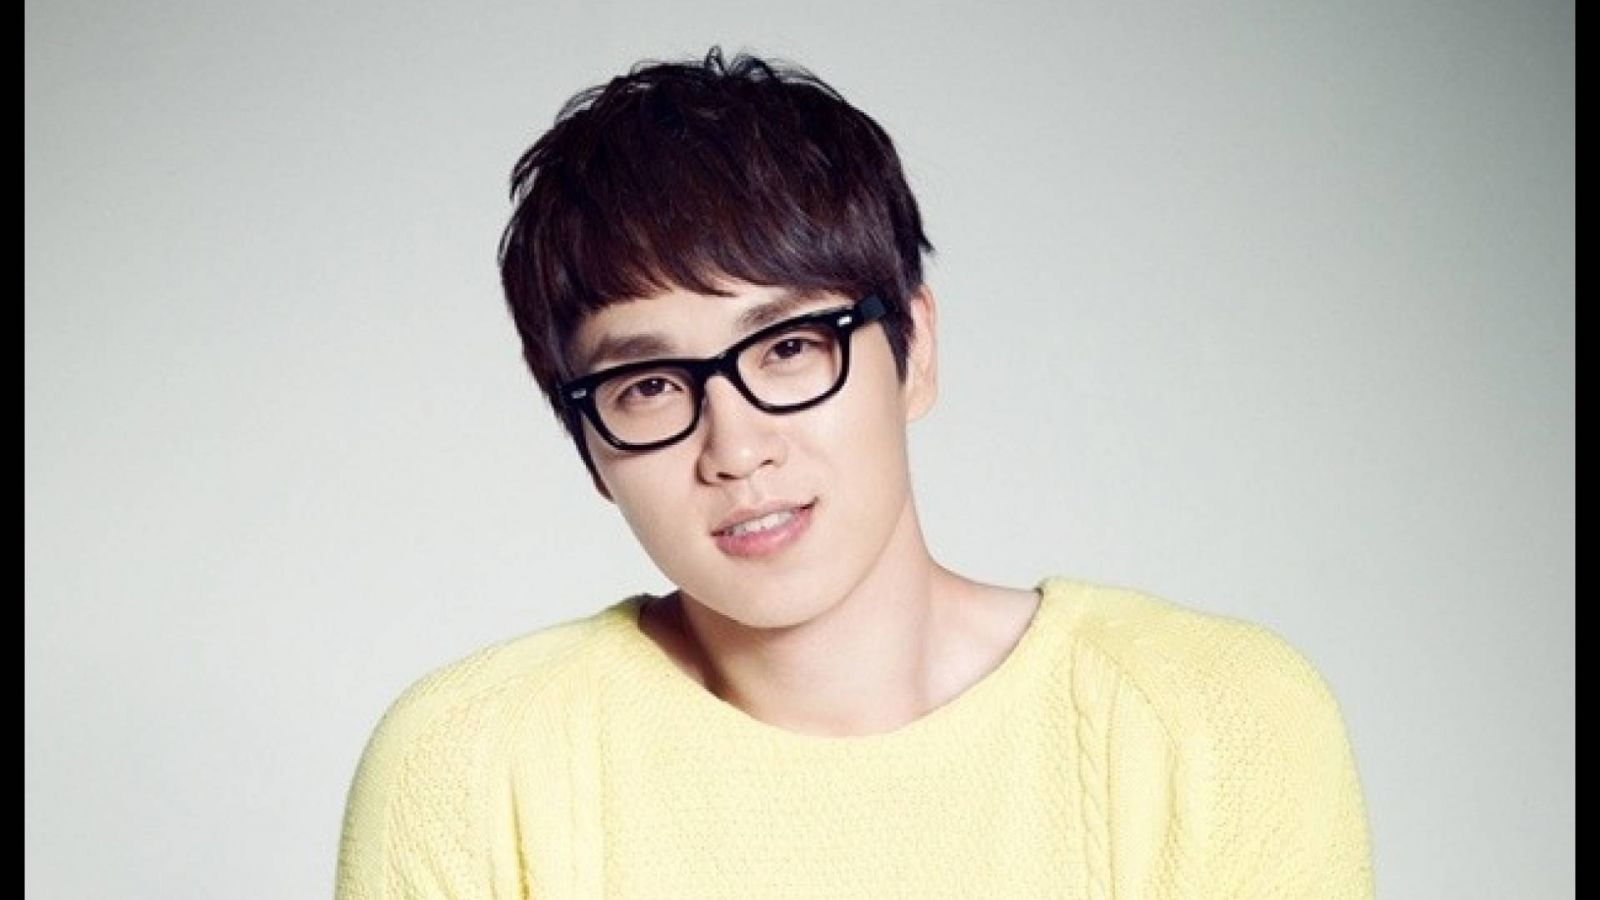 Lee Seok Hoon sort son second mini-album © Jellyfish Entertainment